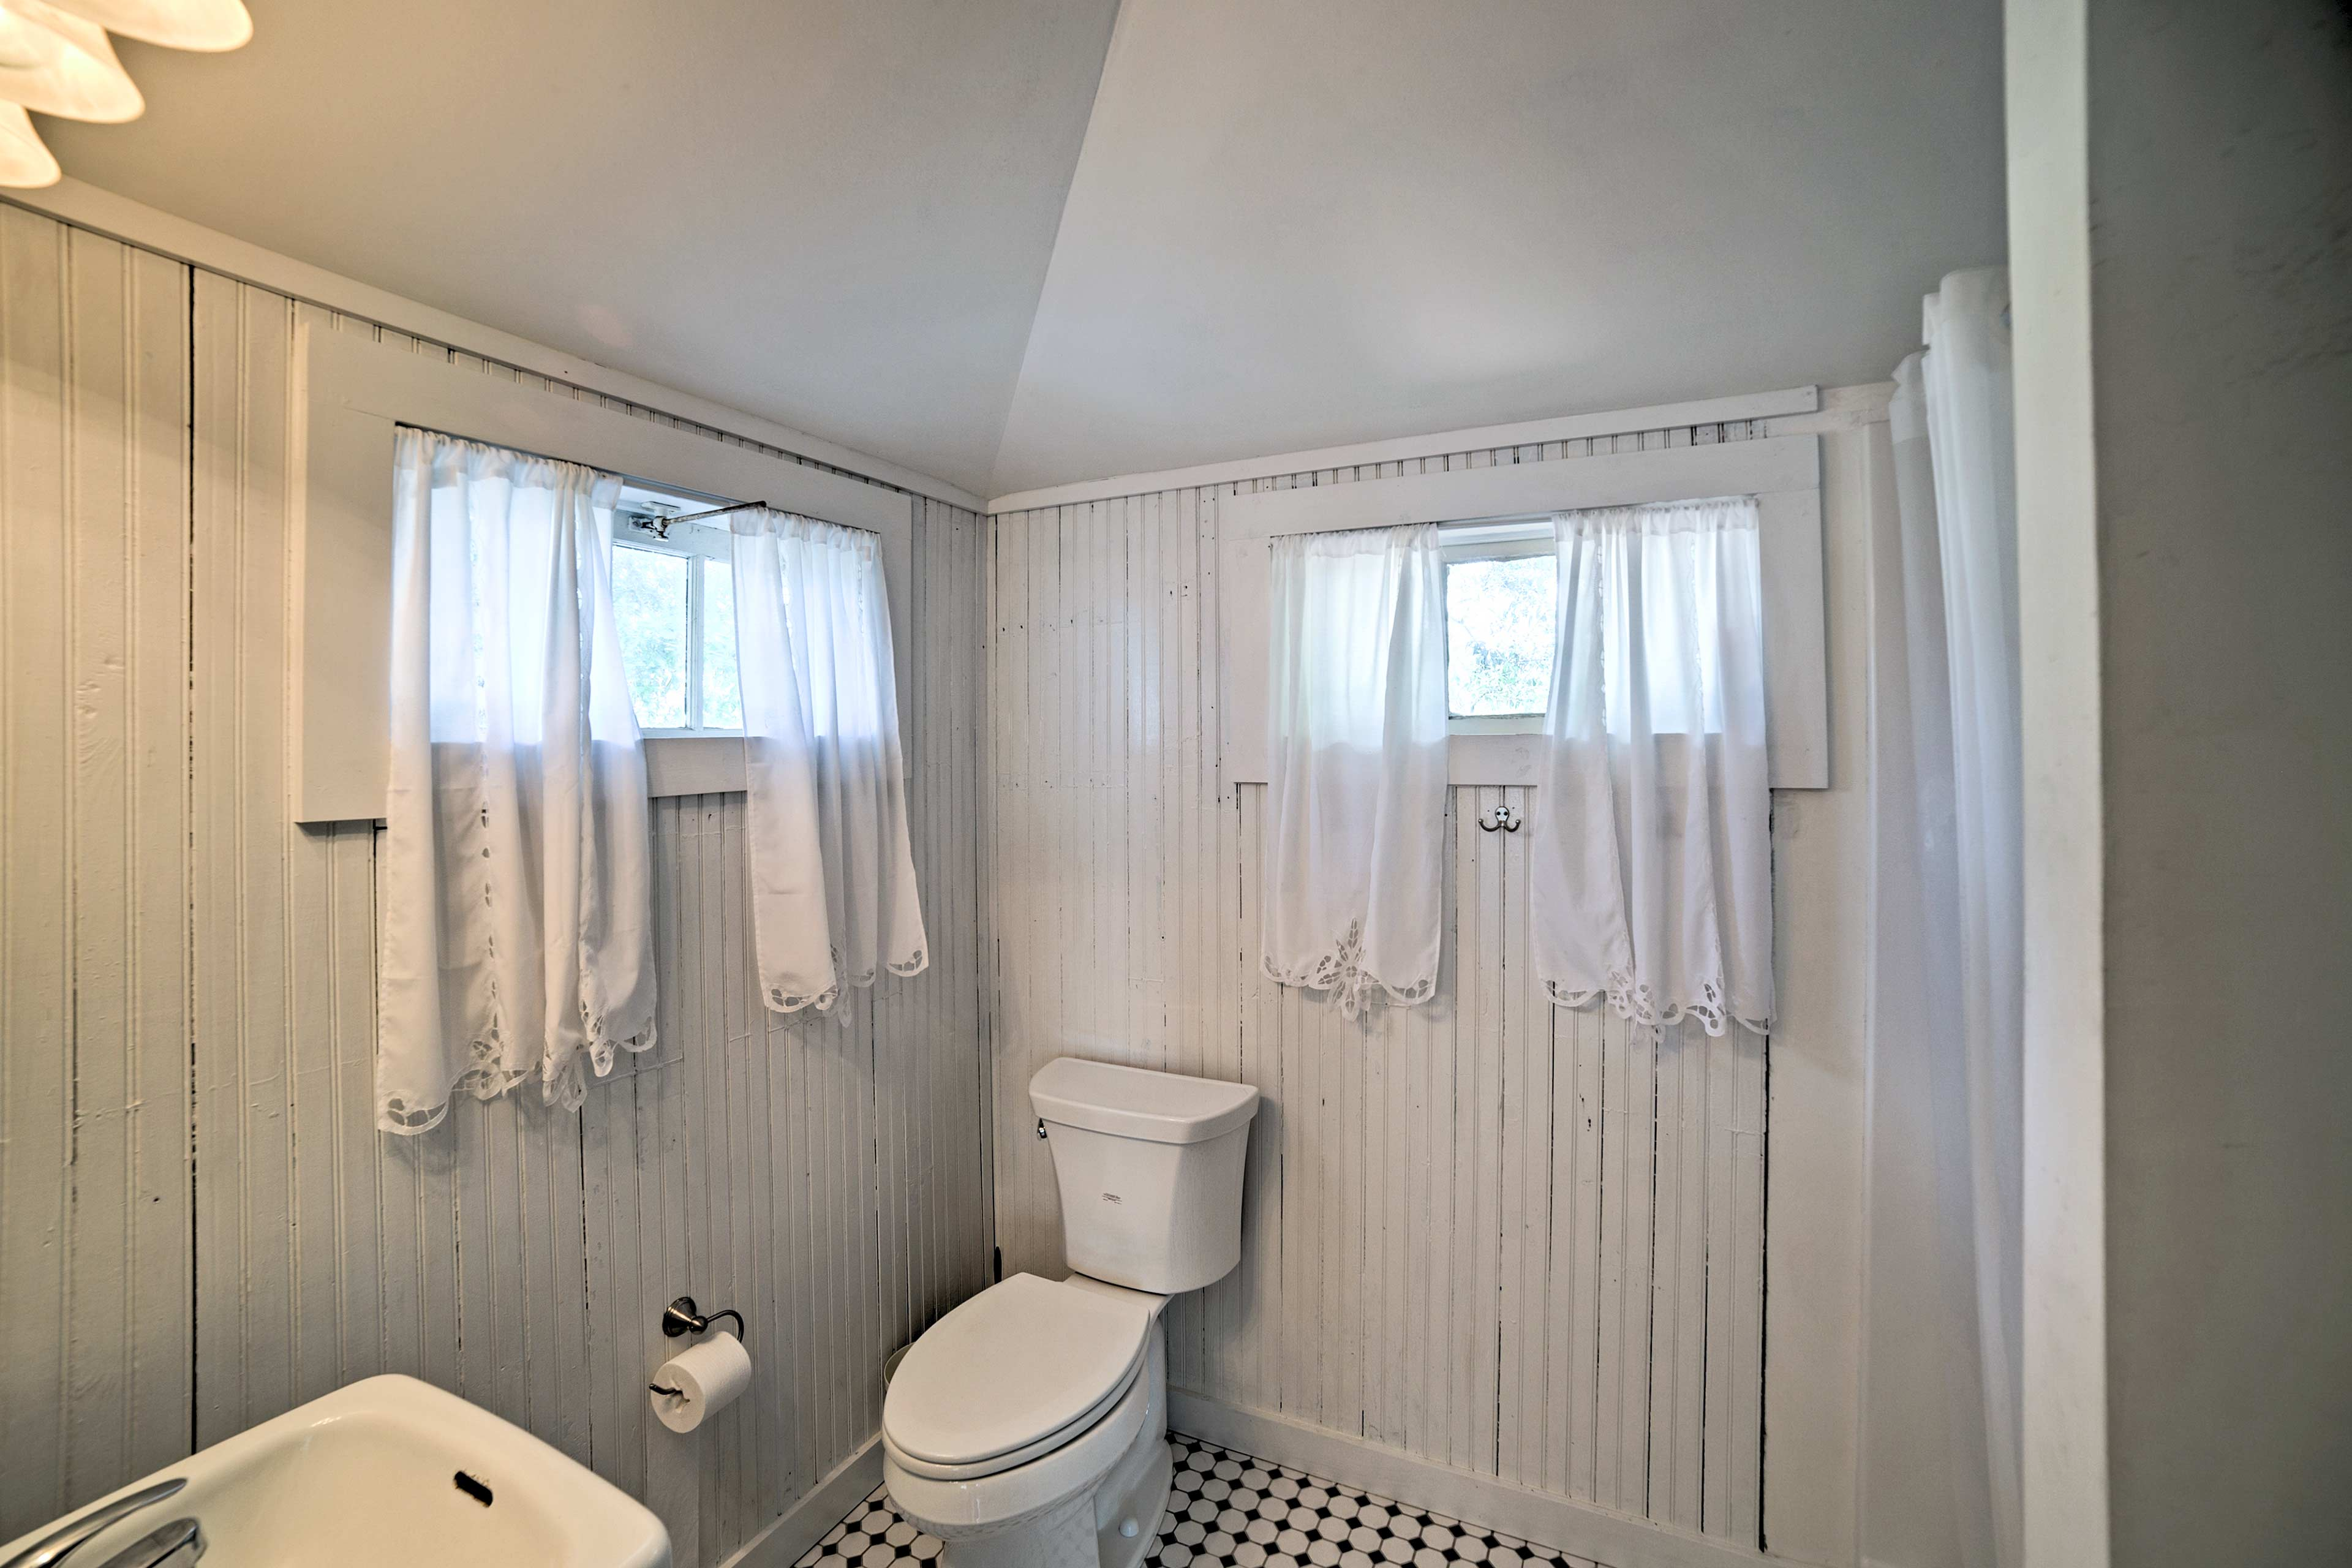 Prep for the day with ease in this private bathroom.